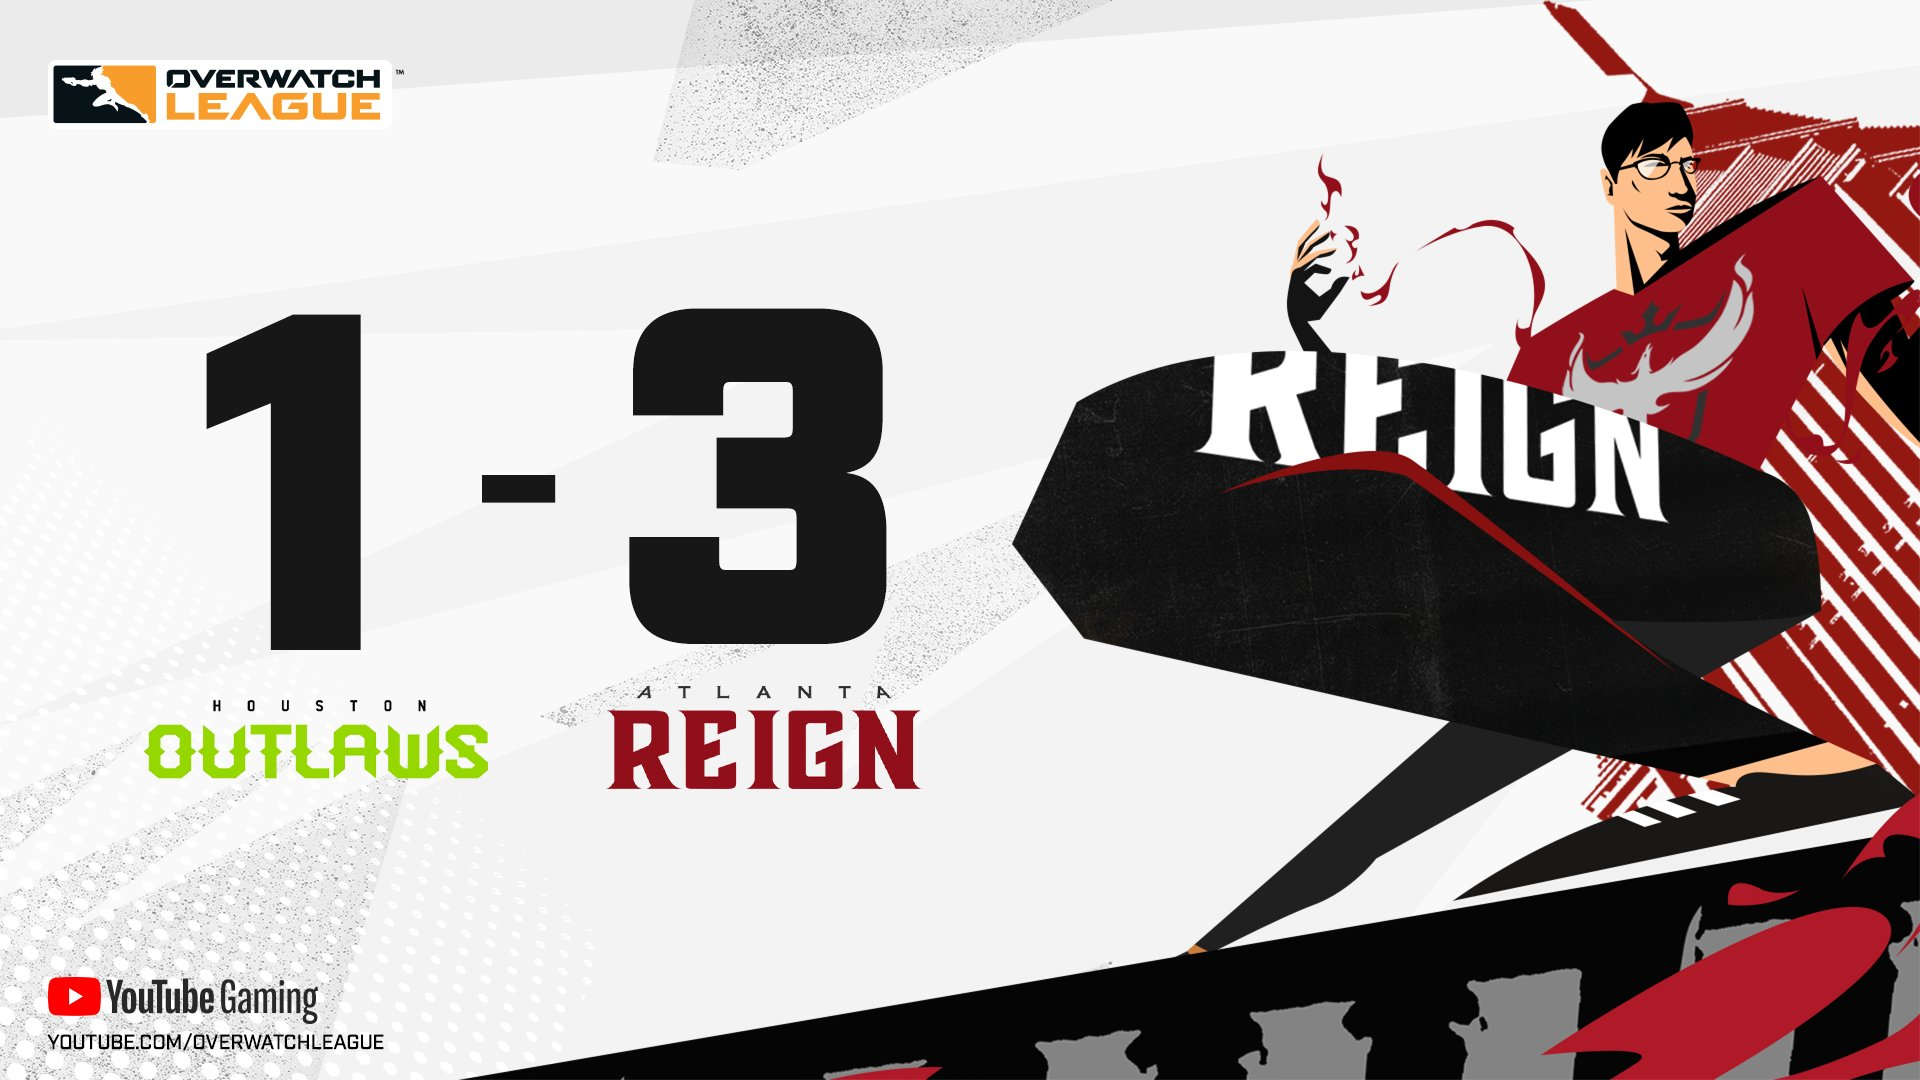 The Houston Outlaws June Joust Weekend Atlanta Reign